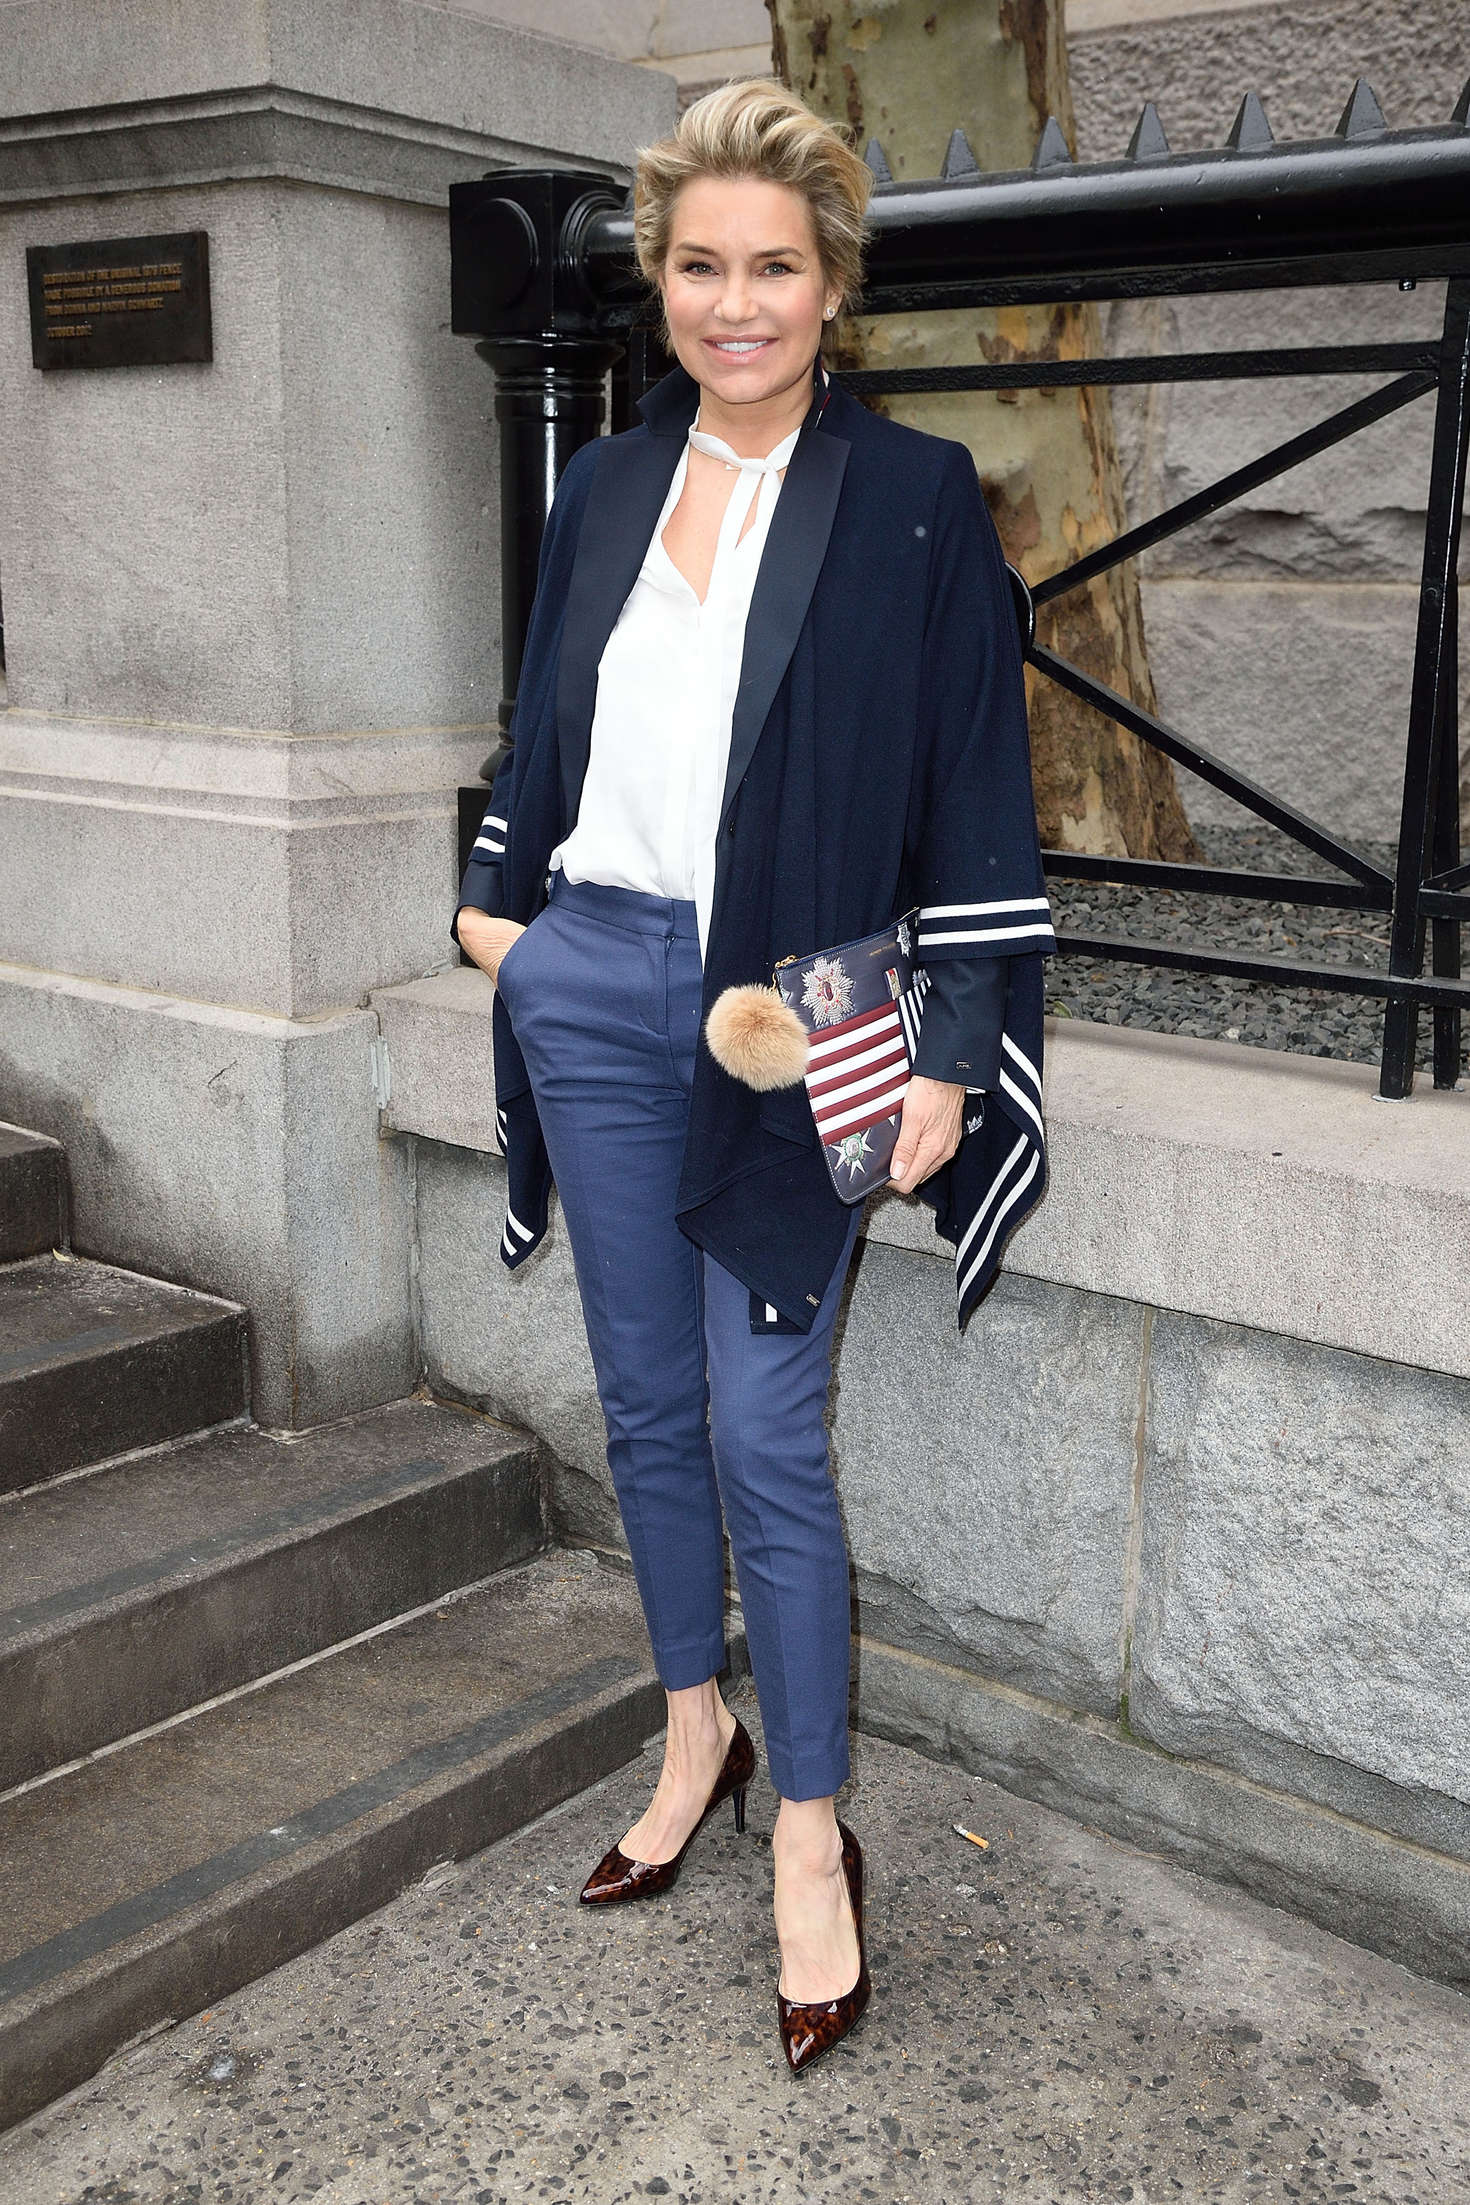 Yolanda Foster Arriving at Tommy Hilfiger Fashion Show in New York